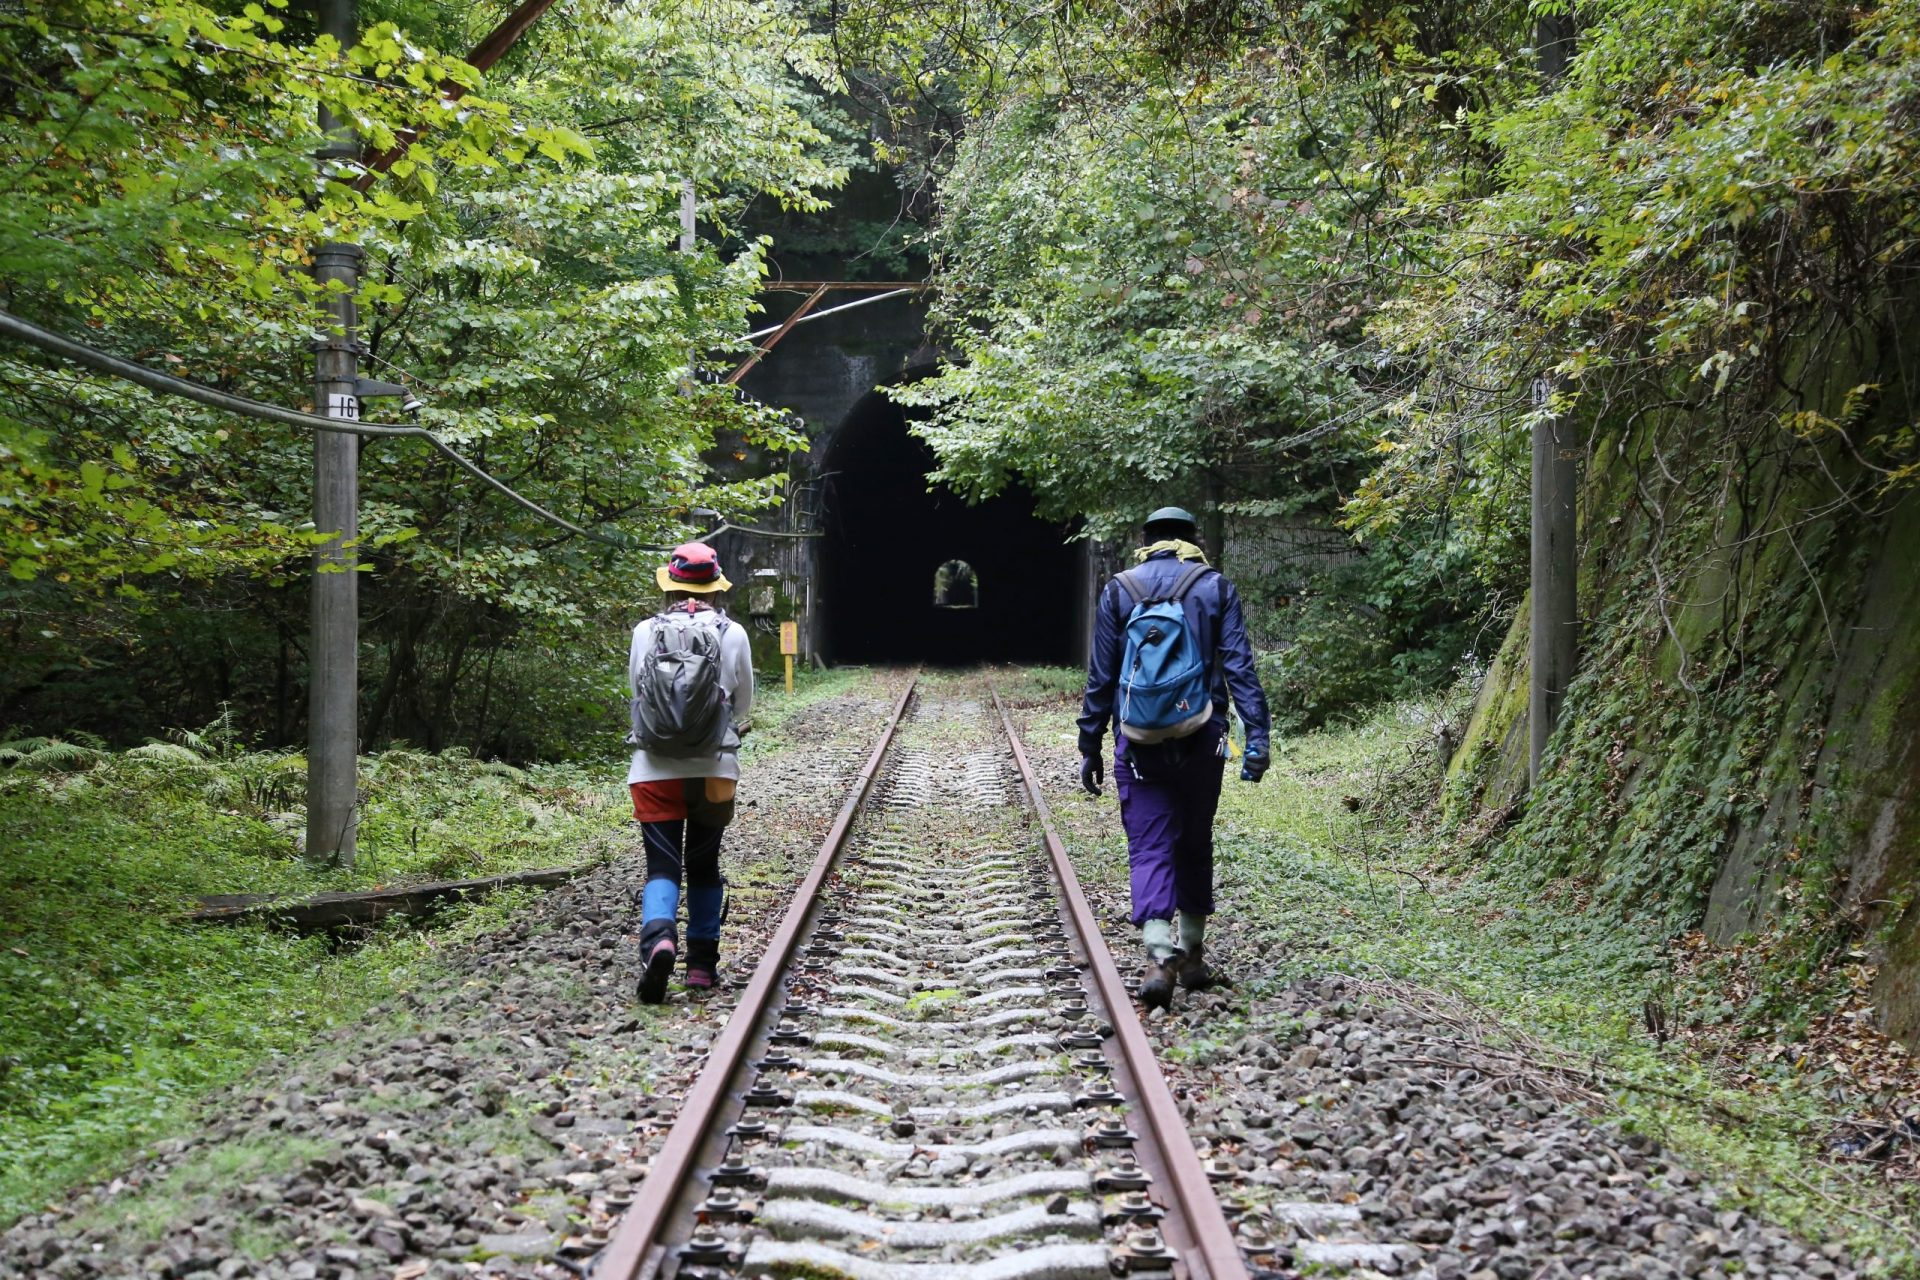 About the Abandoned Railway Walk?